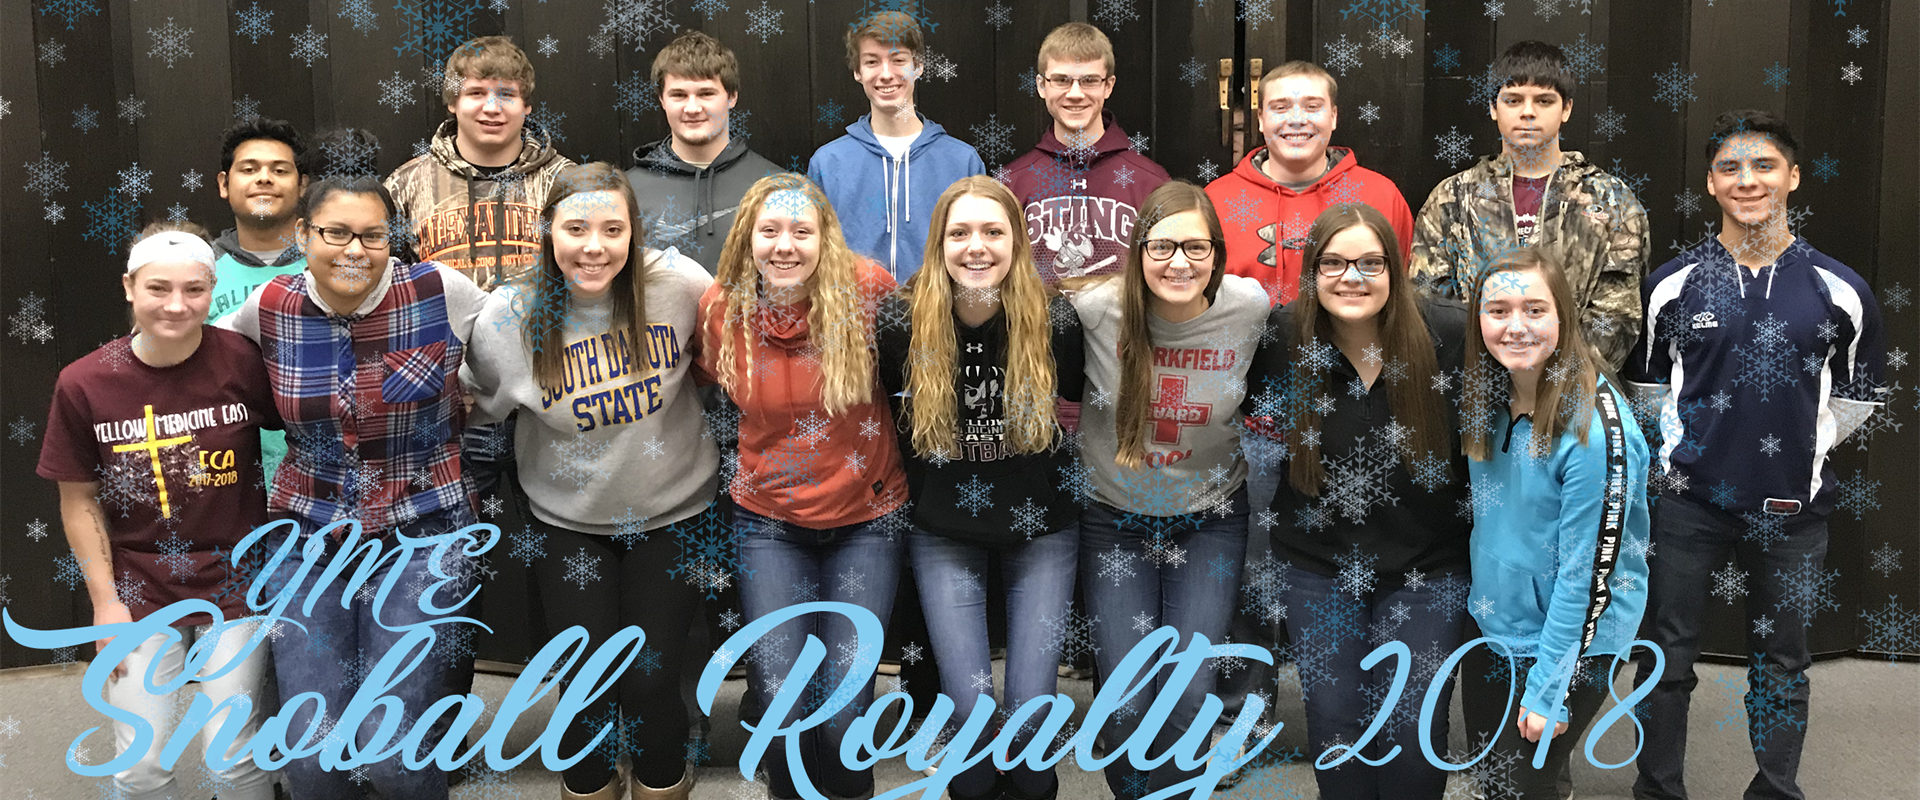 2018 Snoball Royalty